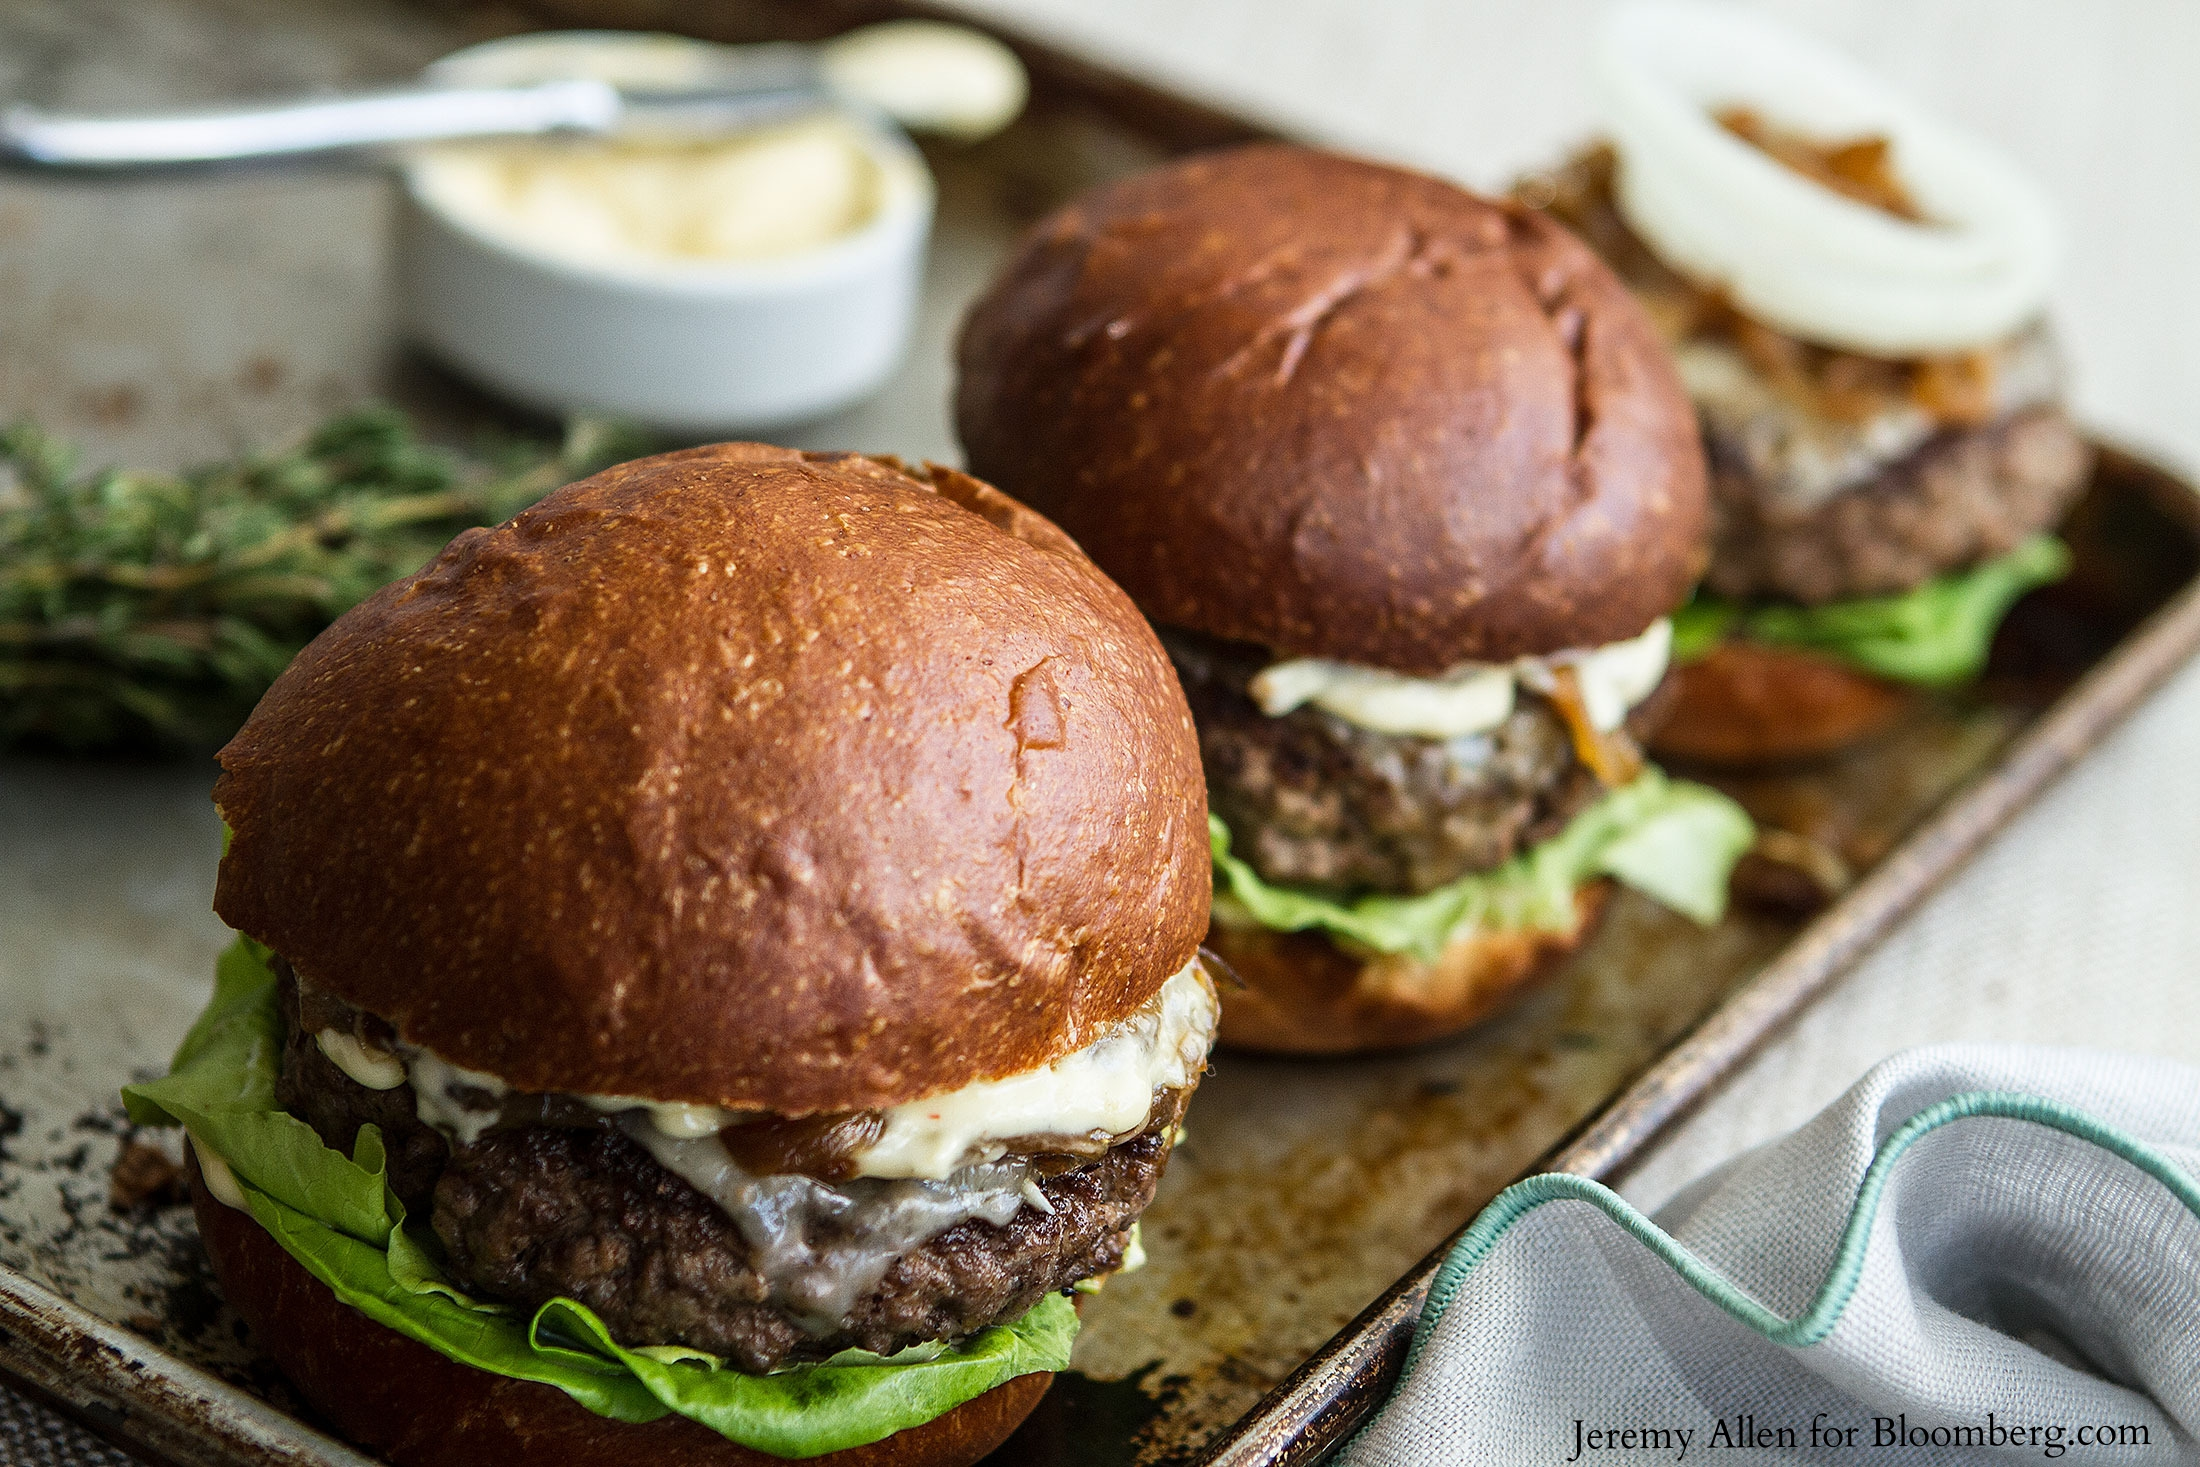 Beefy Burger with Sweet-and-Sour Onions